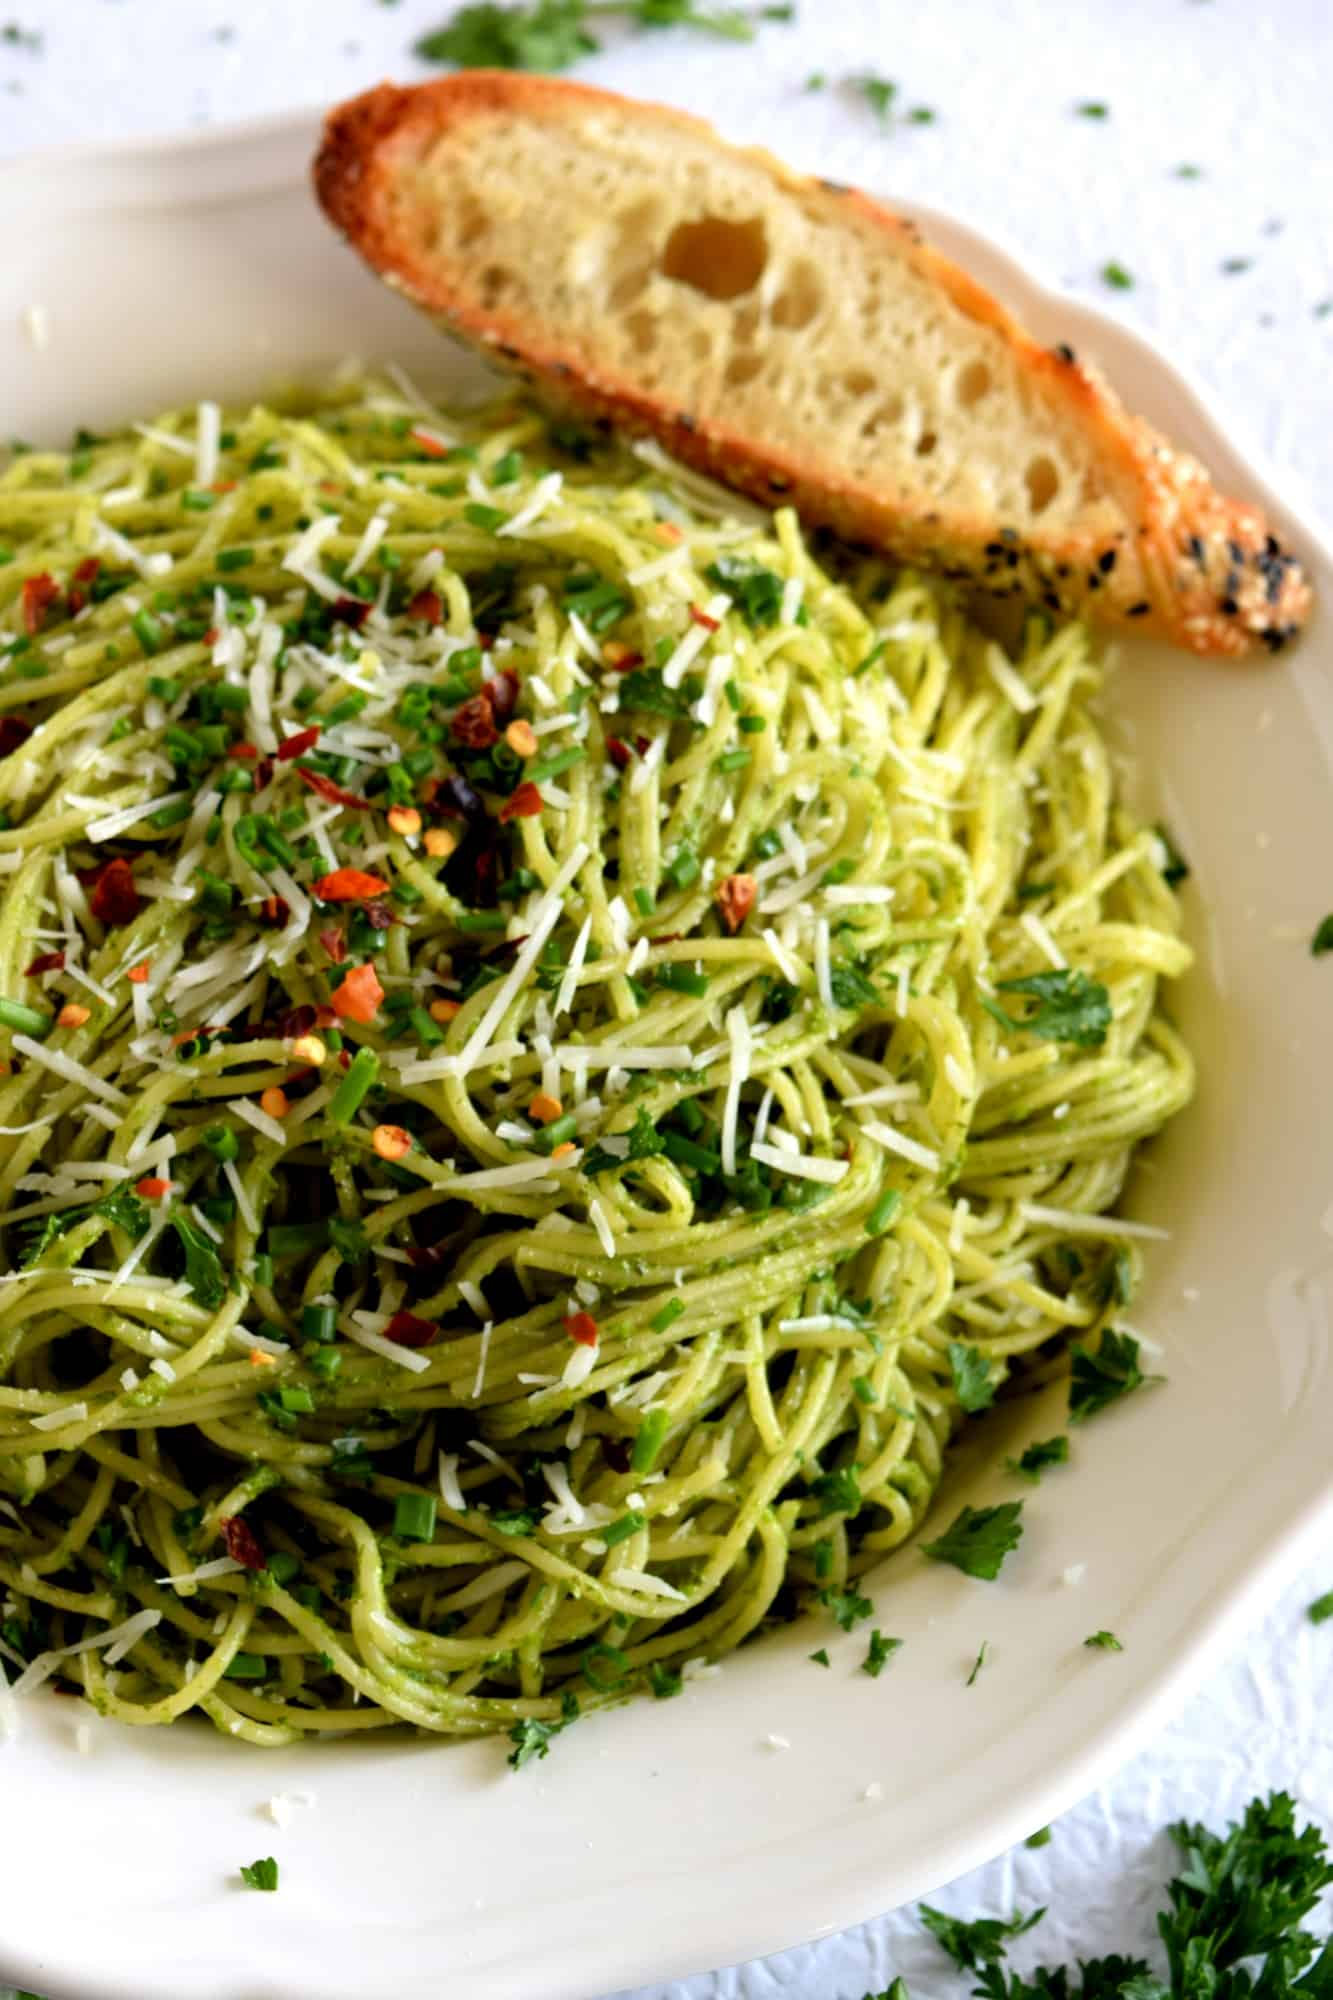 Scallion And Basil Pesto Spaghetti